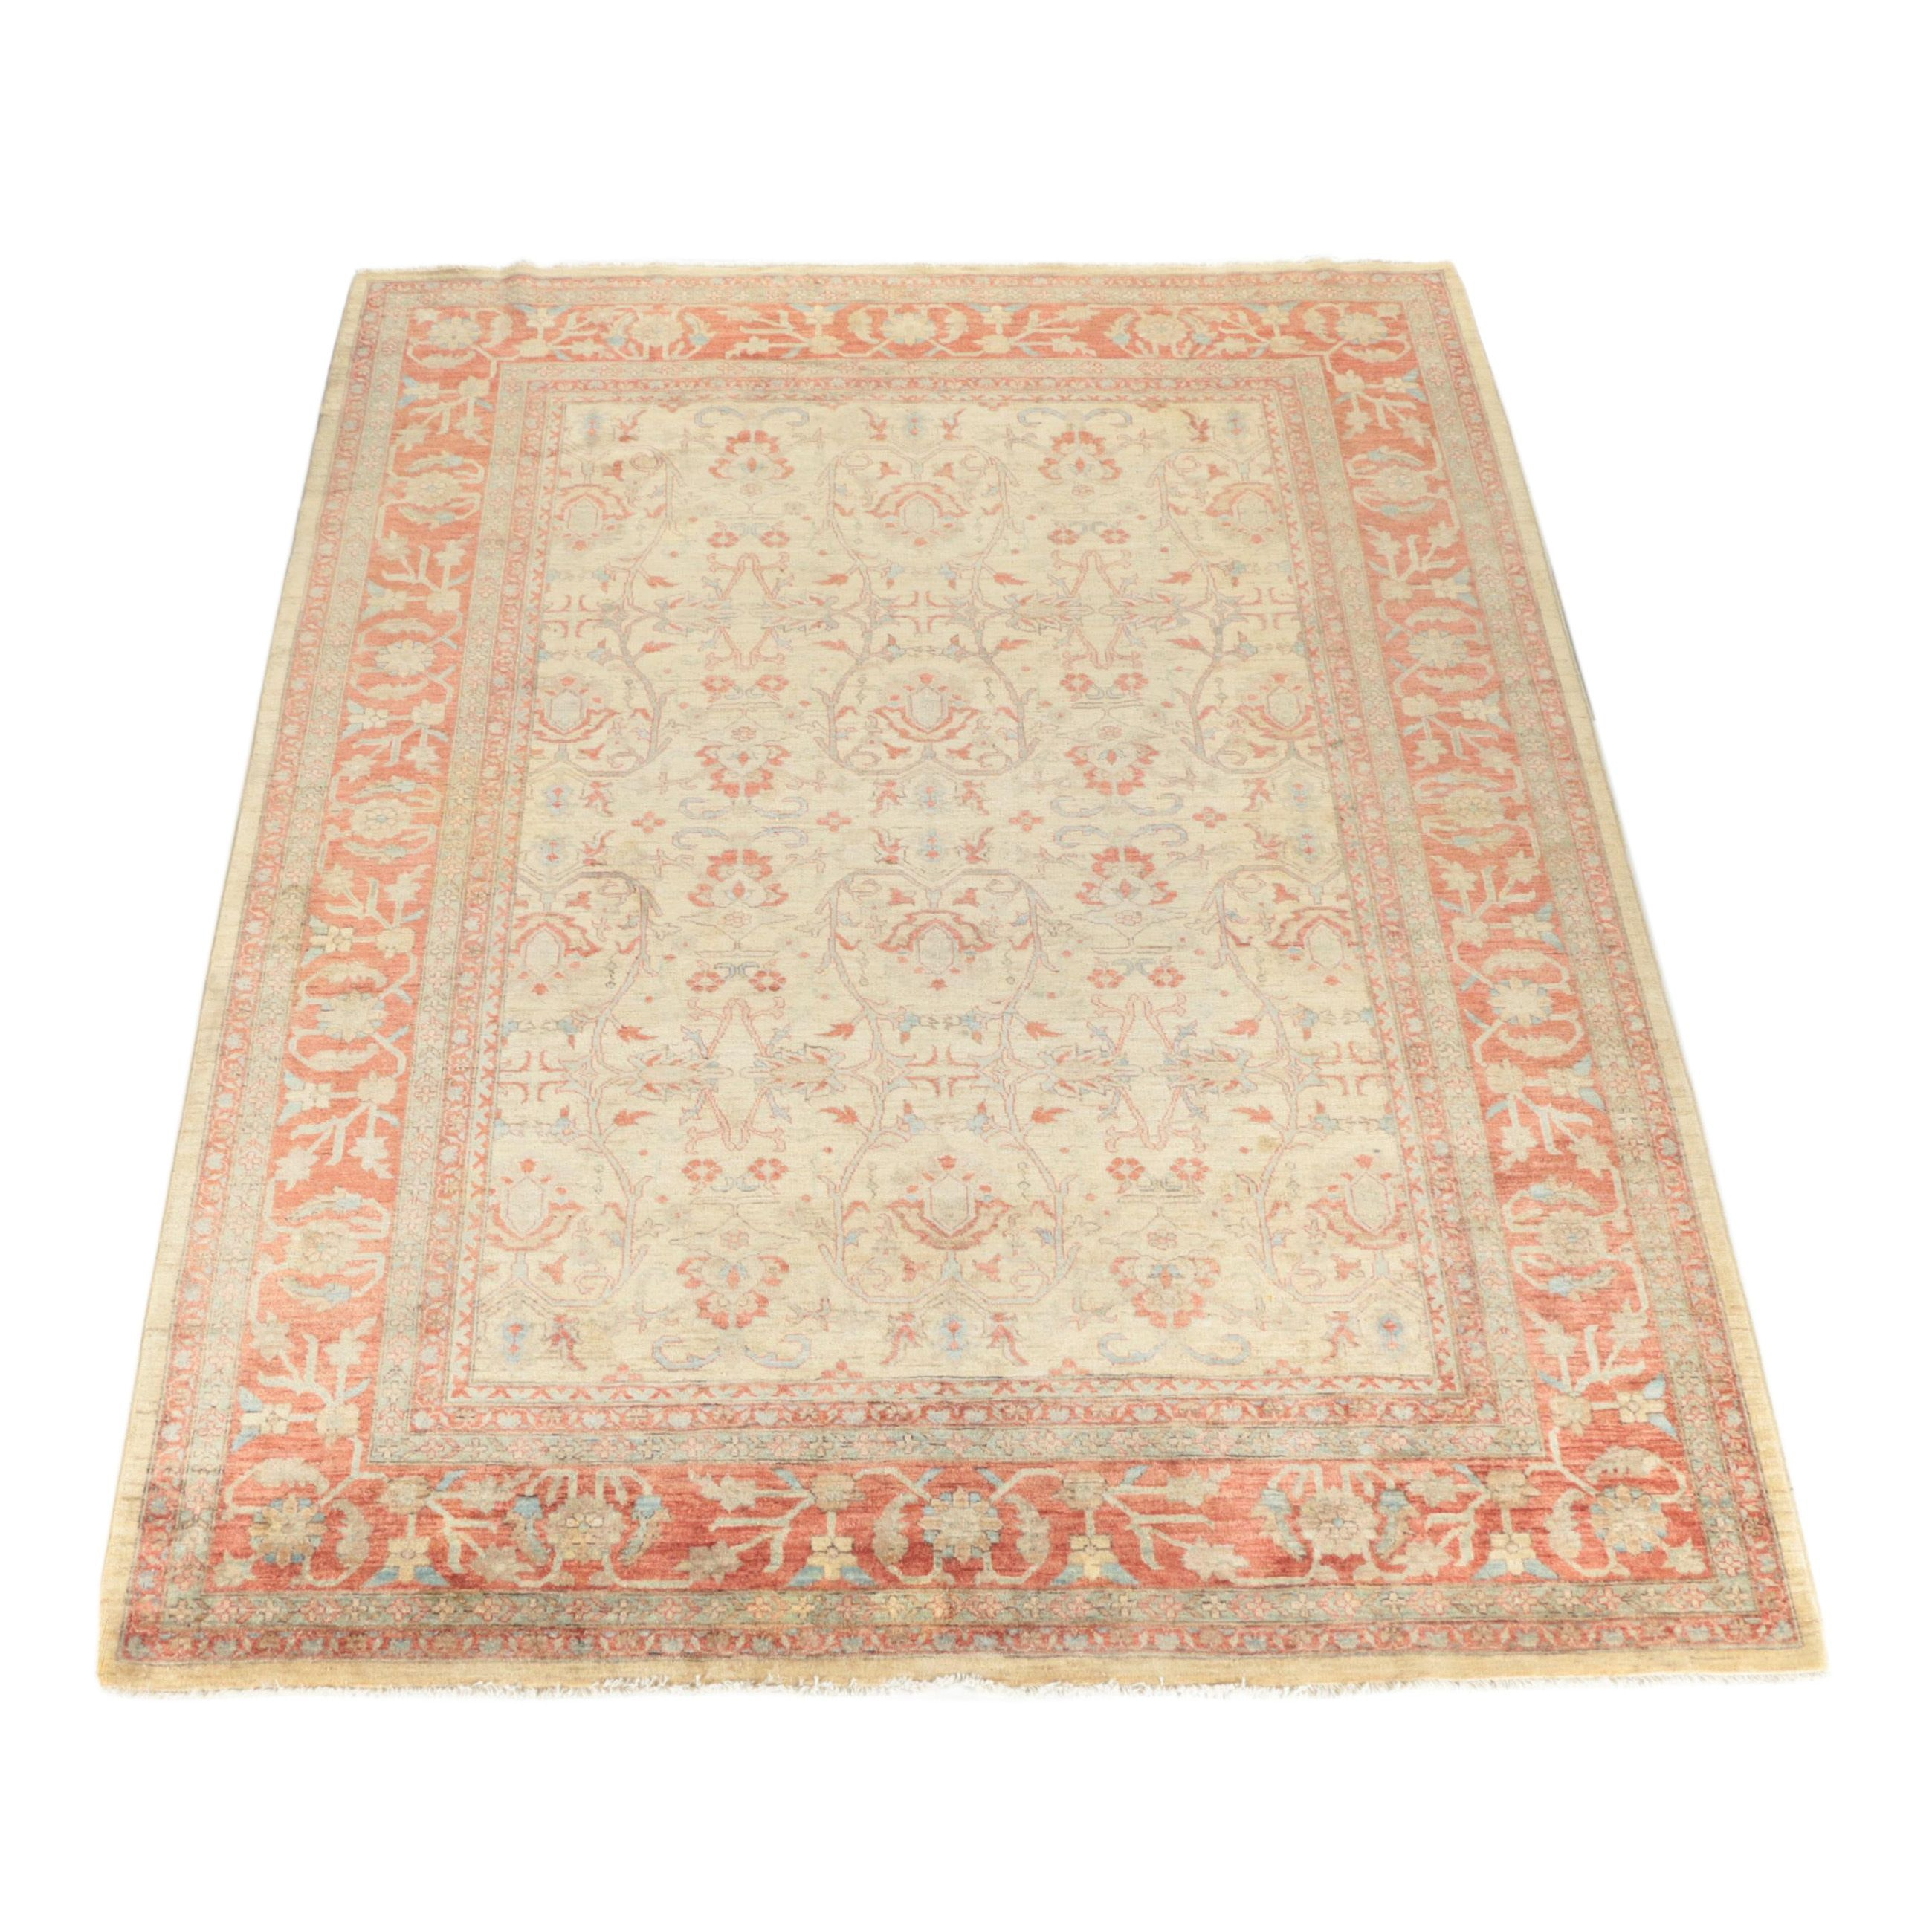 Hand-Knotted Indo-Persian Peshawar Area Rug